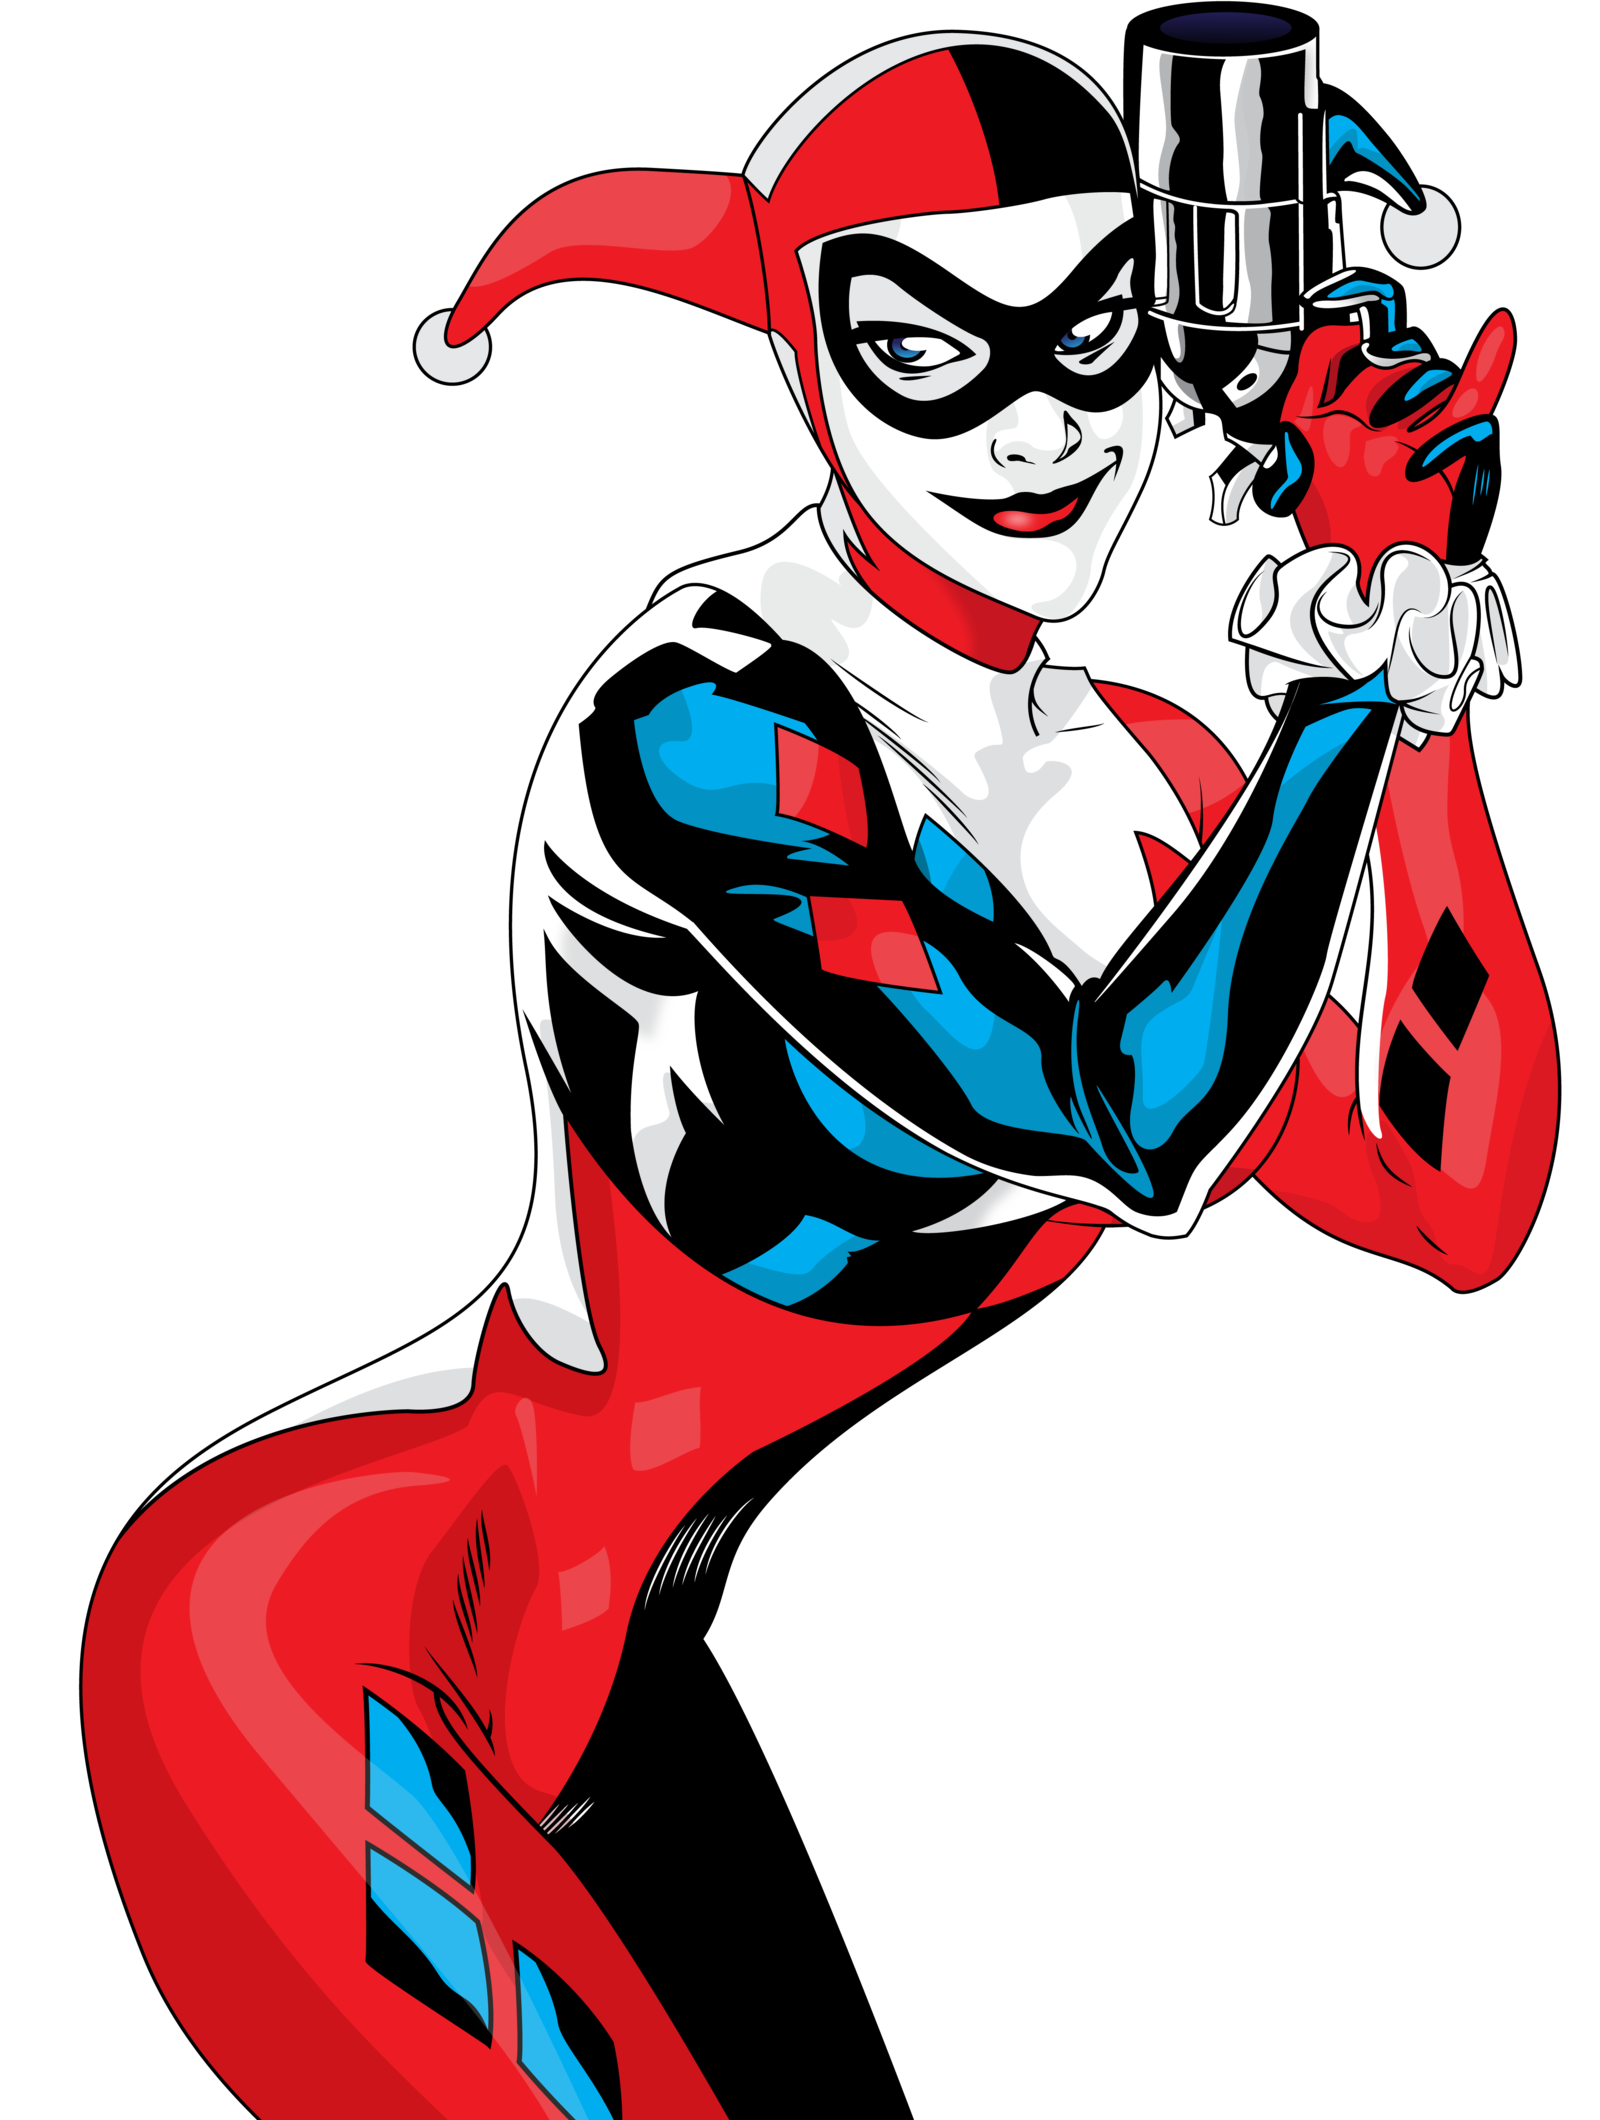 Queen clipart quin. Harley quinn png images